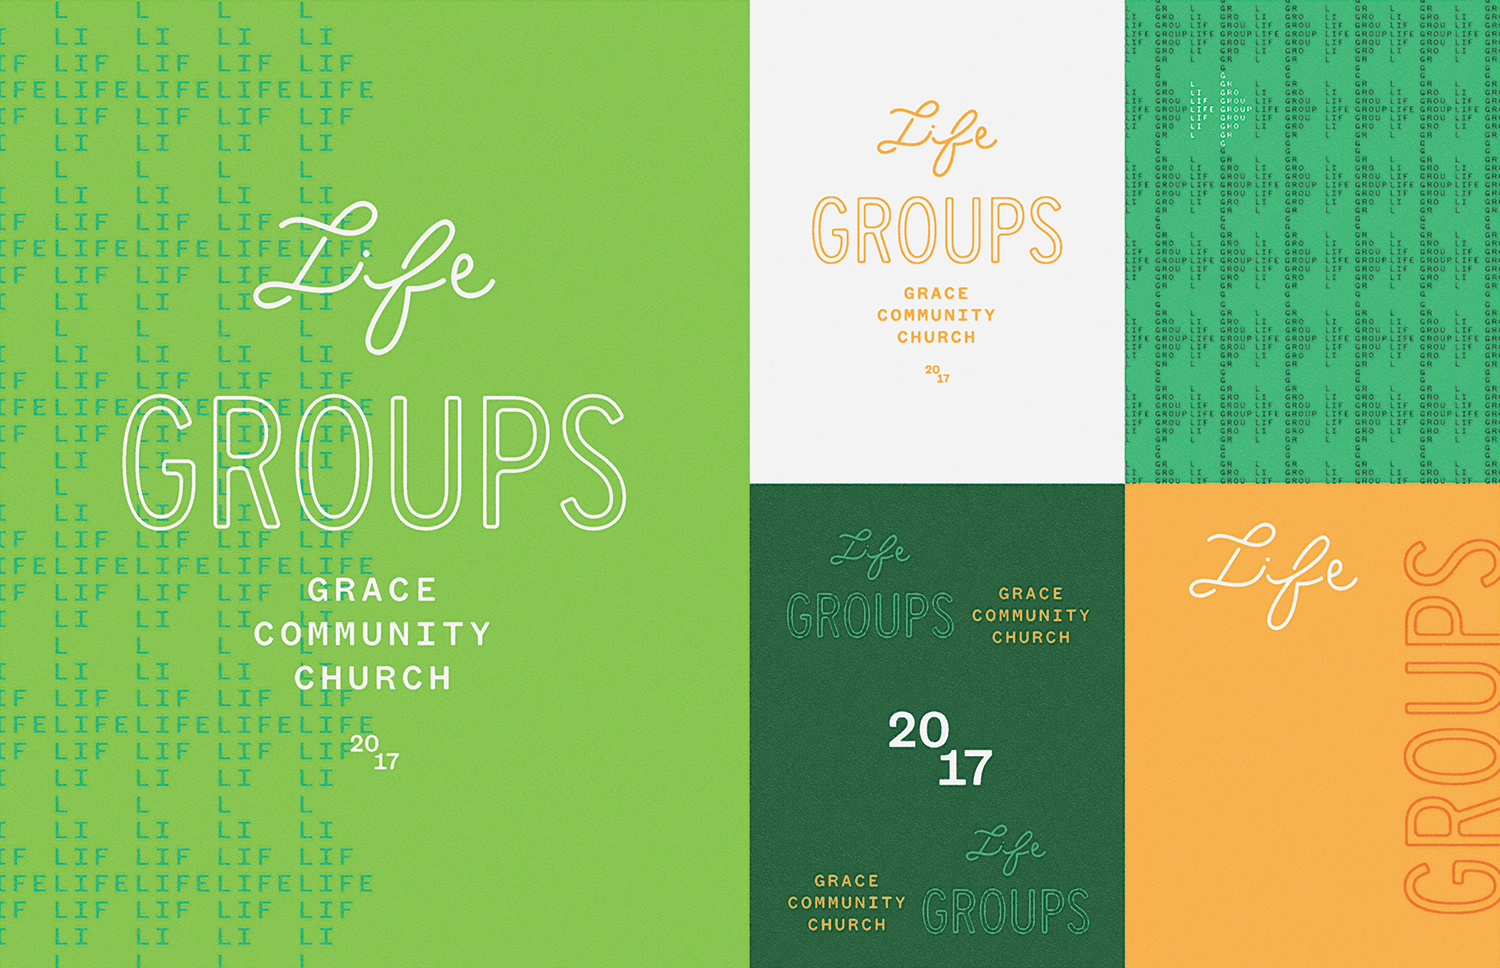 lifegroups-texture-small.jpg